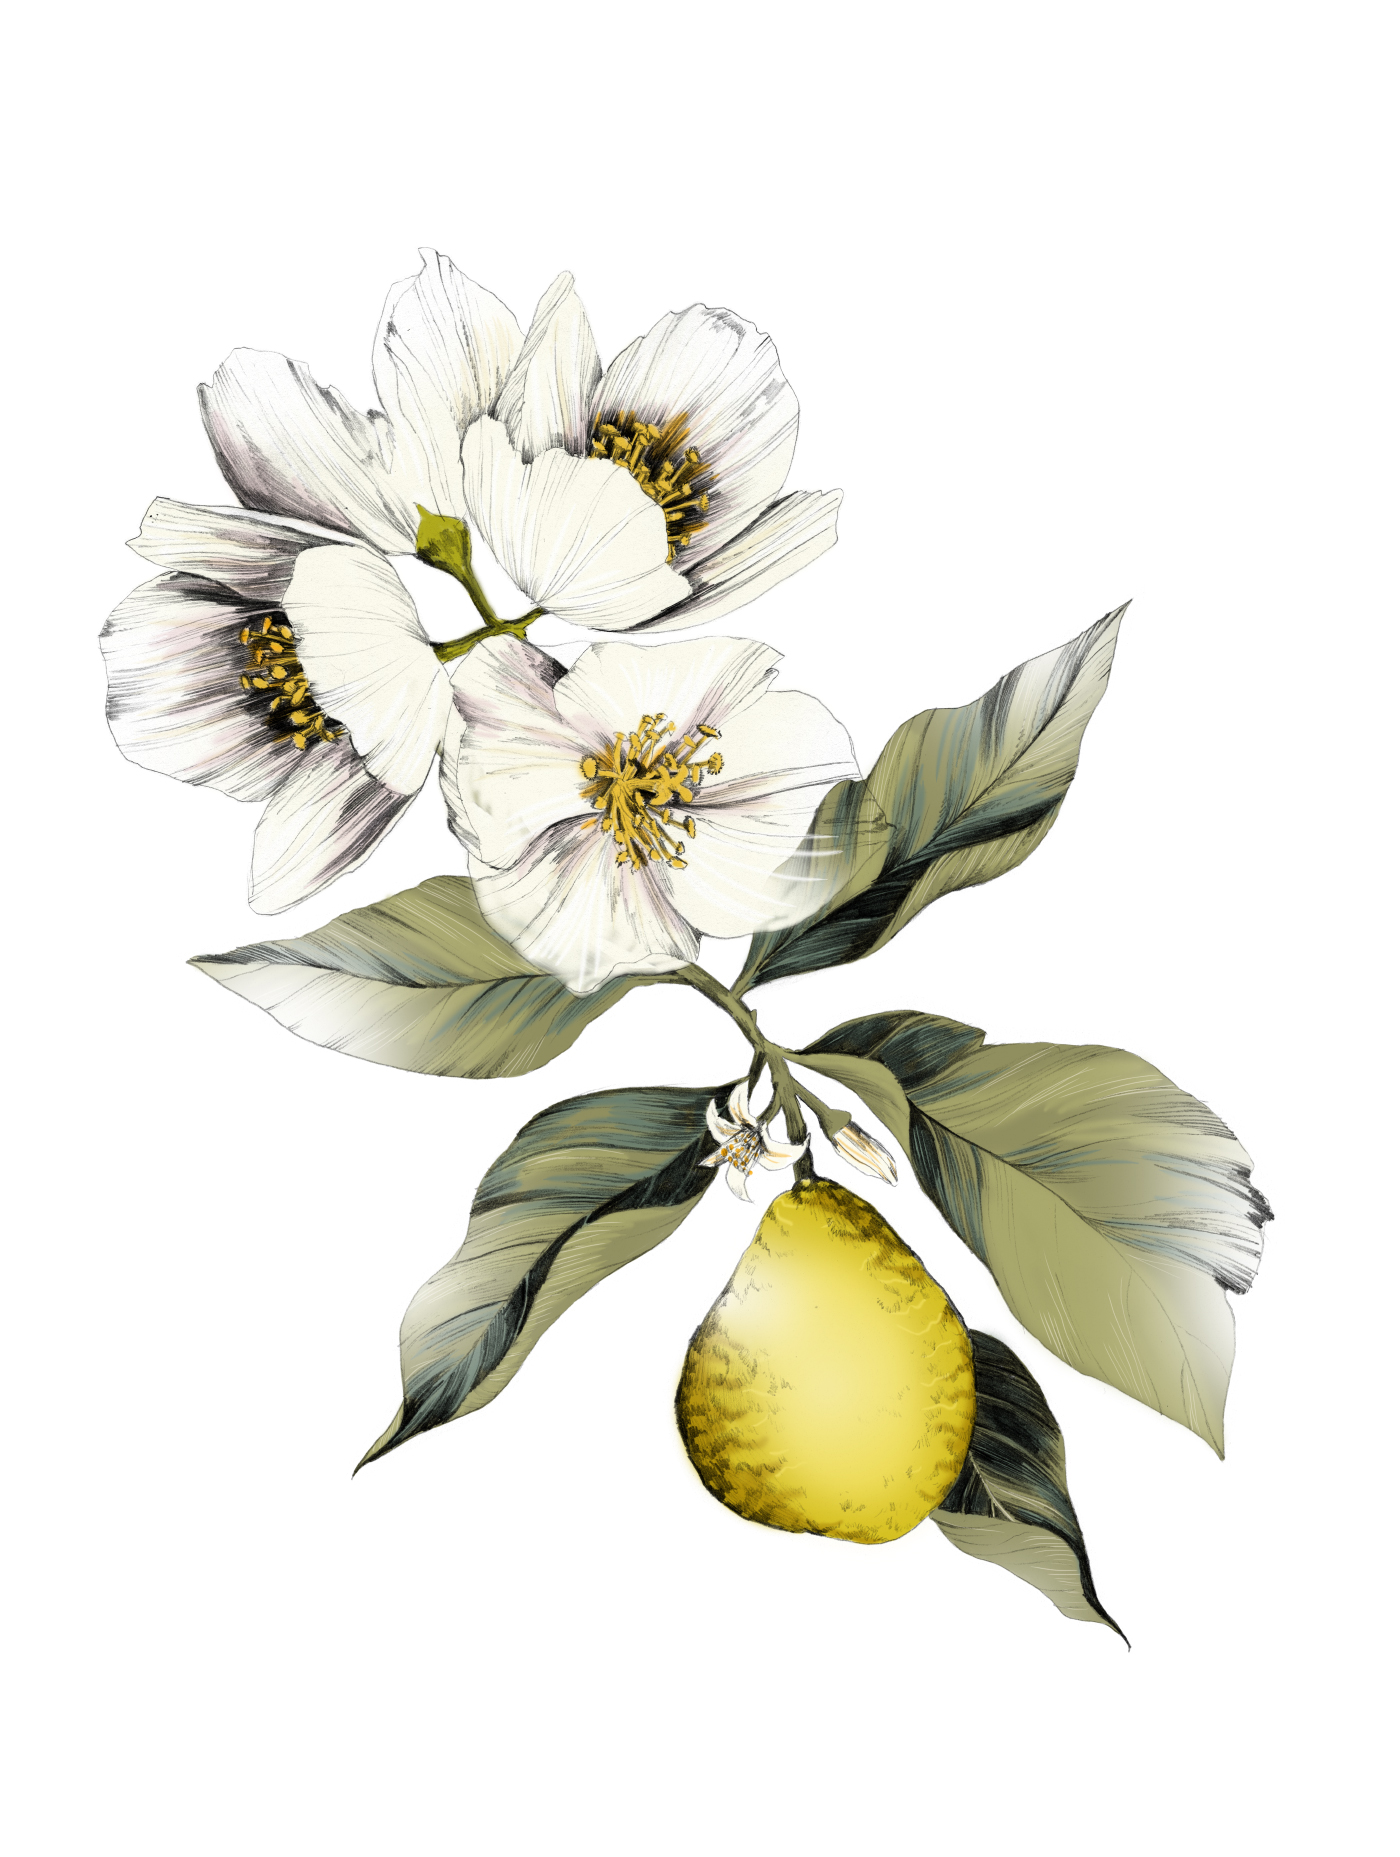 fig. 3. Illustration: flowers and fruit